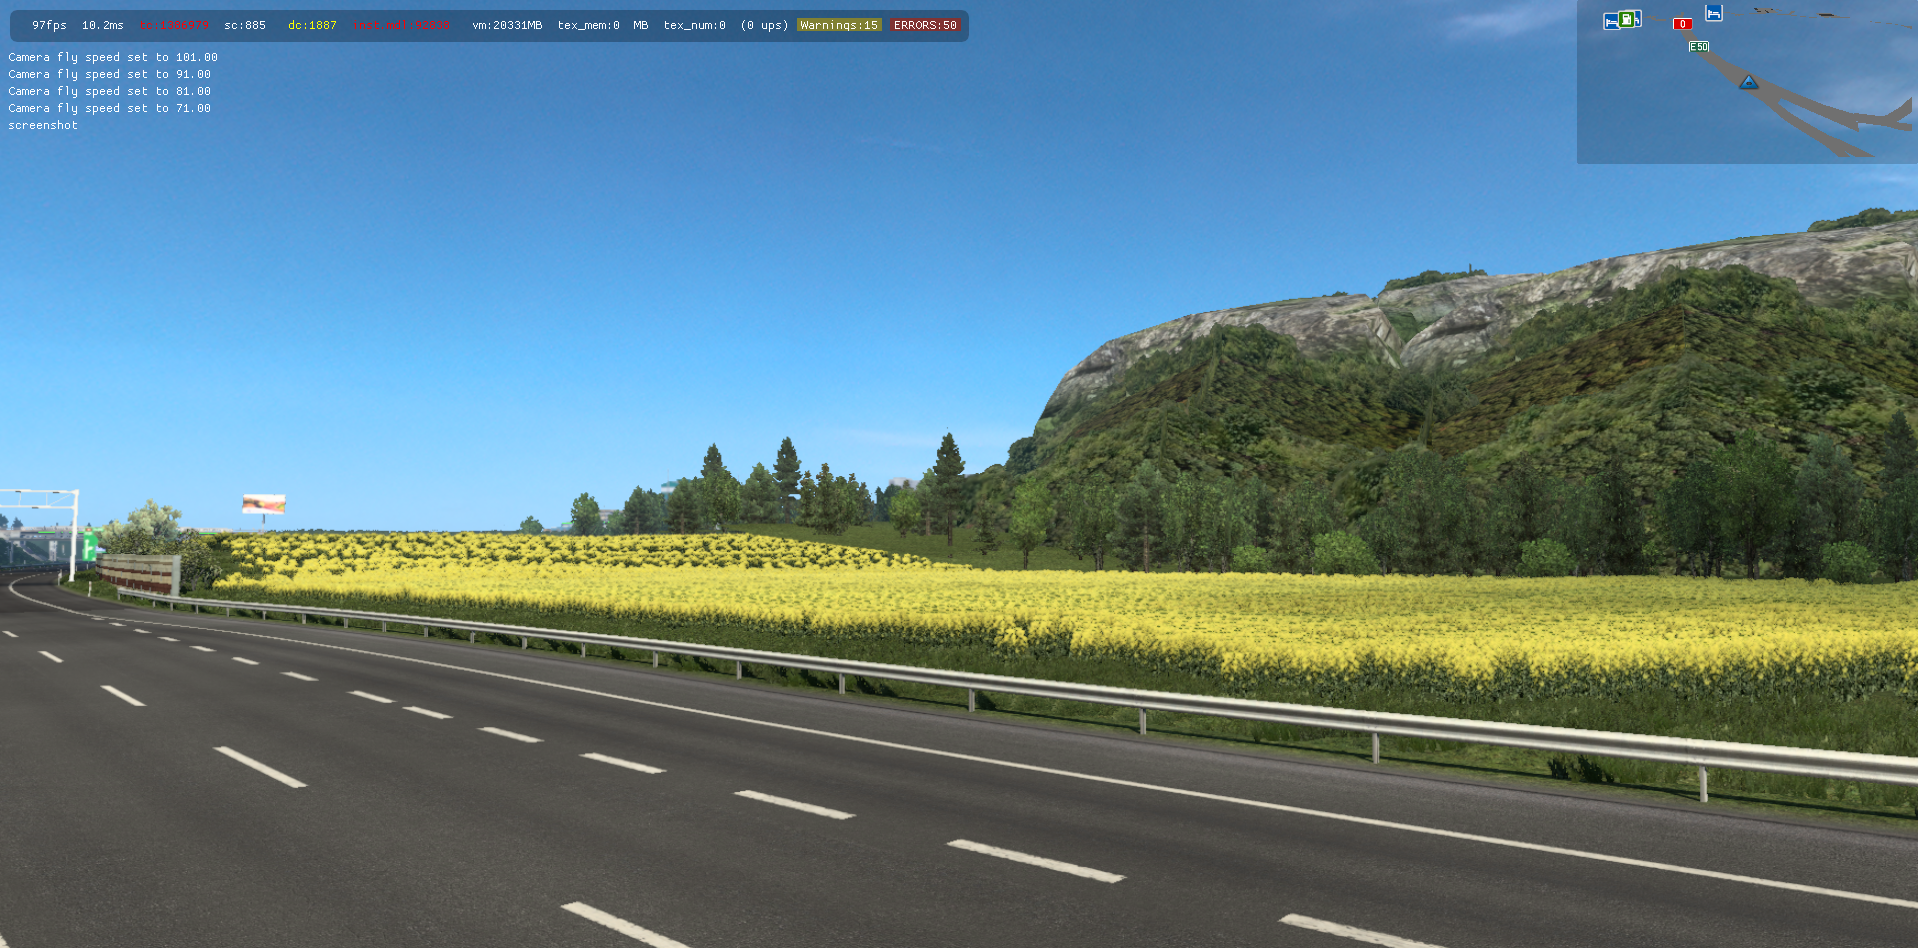 ets2_20210620_210722_00.png